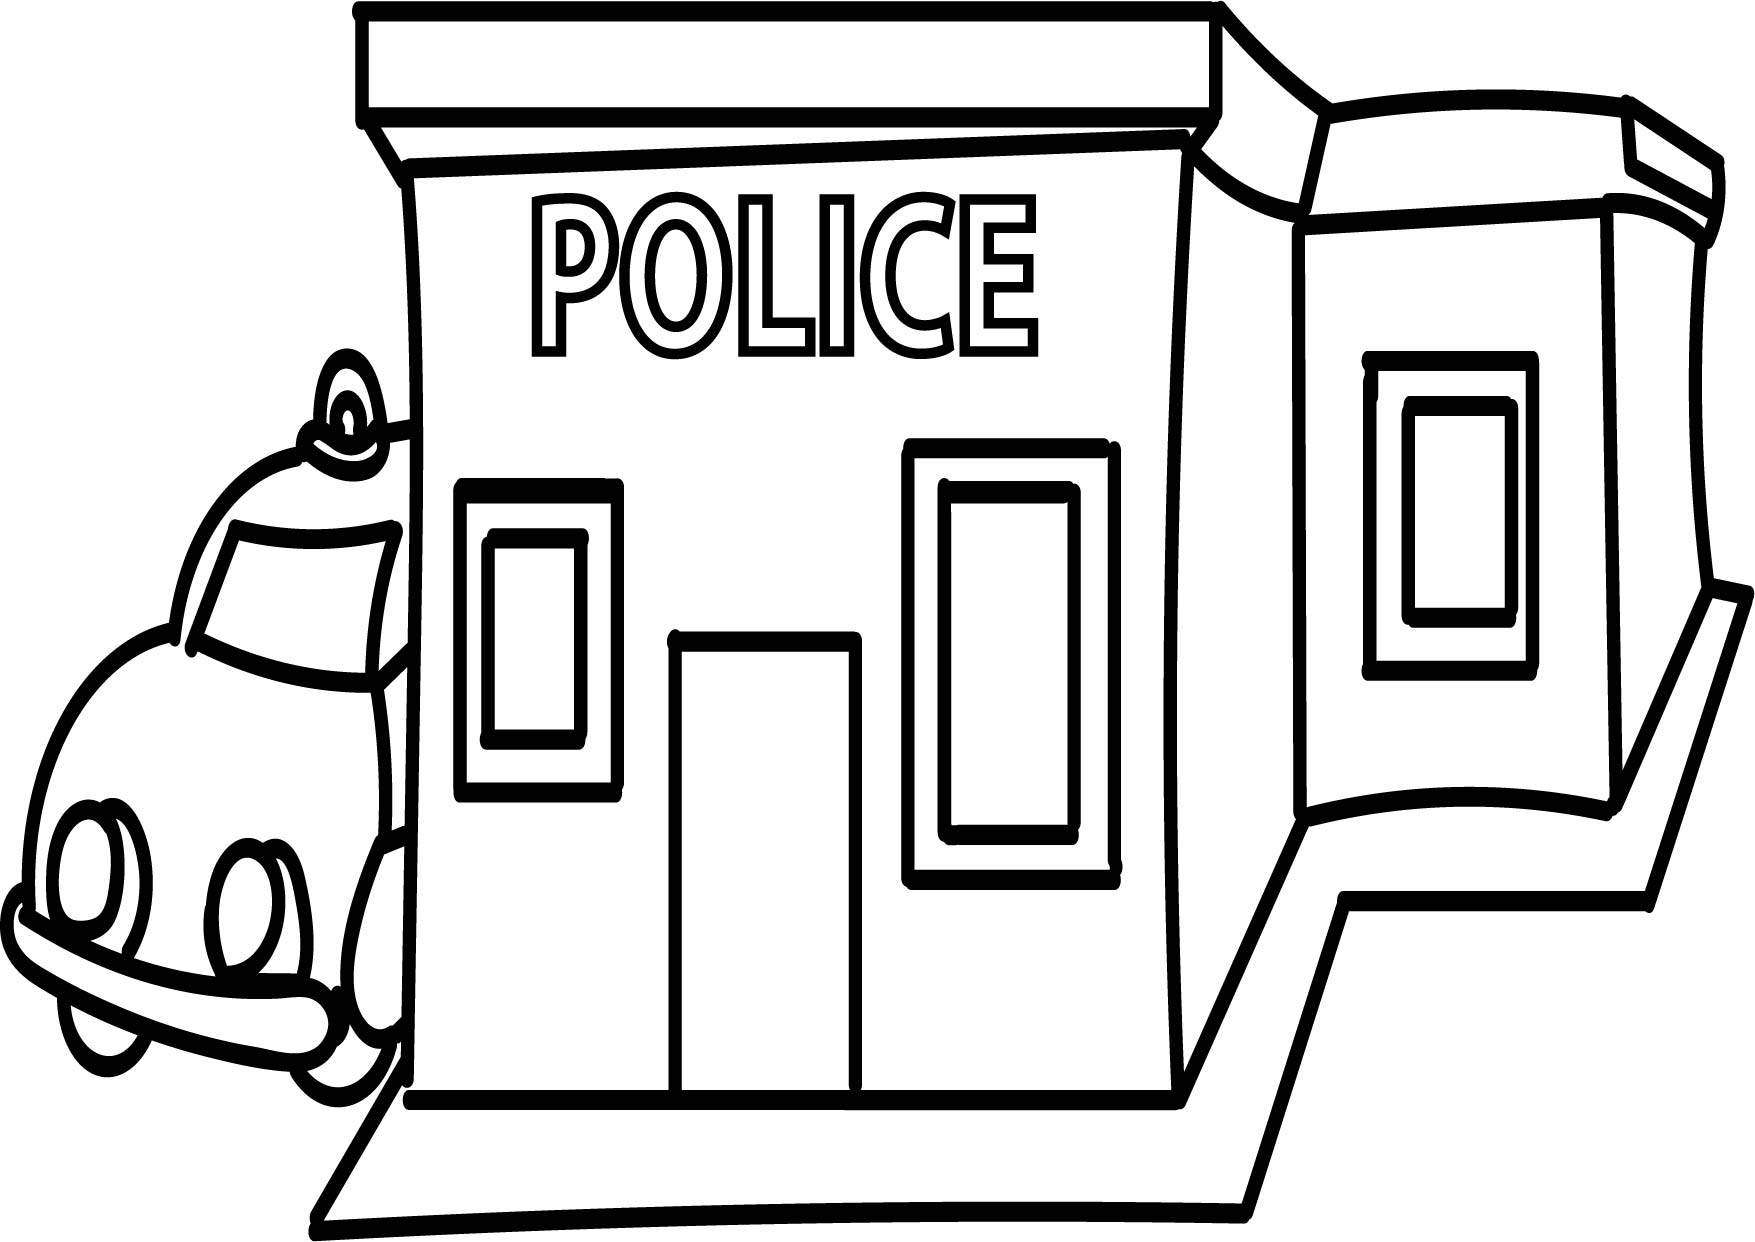 police station clipart black and white 9 clipart station rh clipartstation com police station clipart vector police station clipart black and white